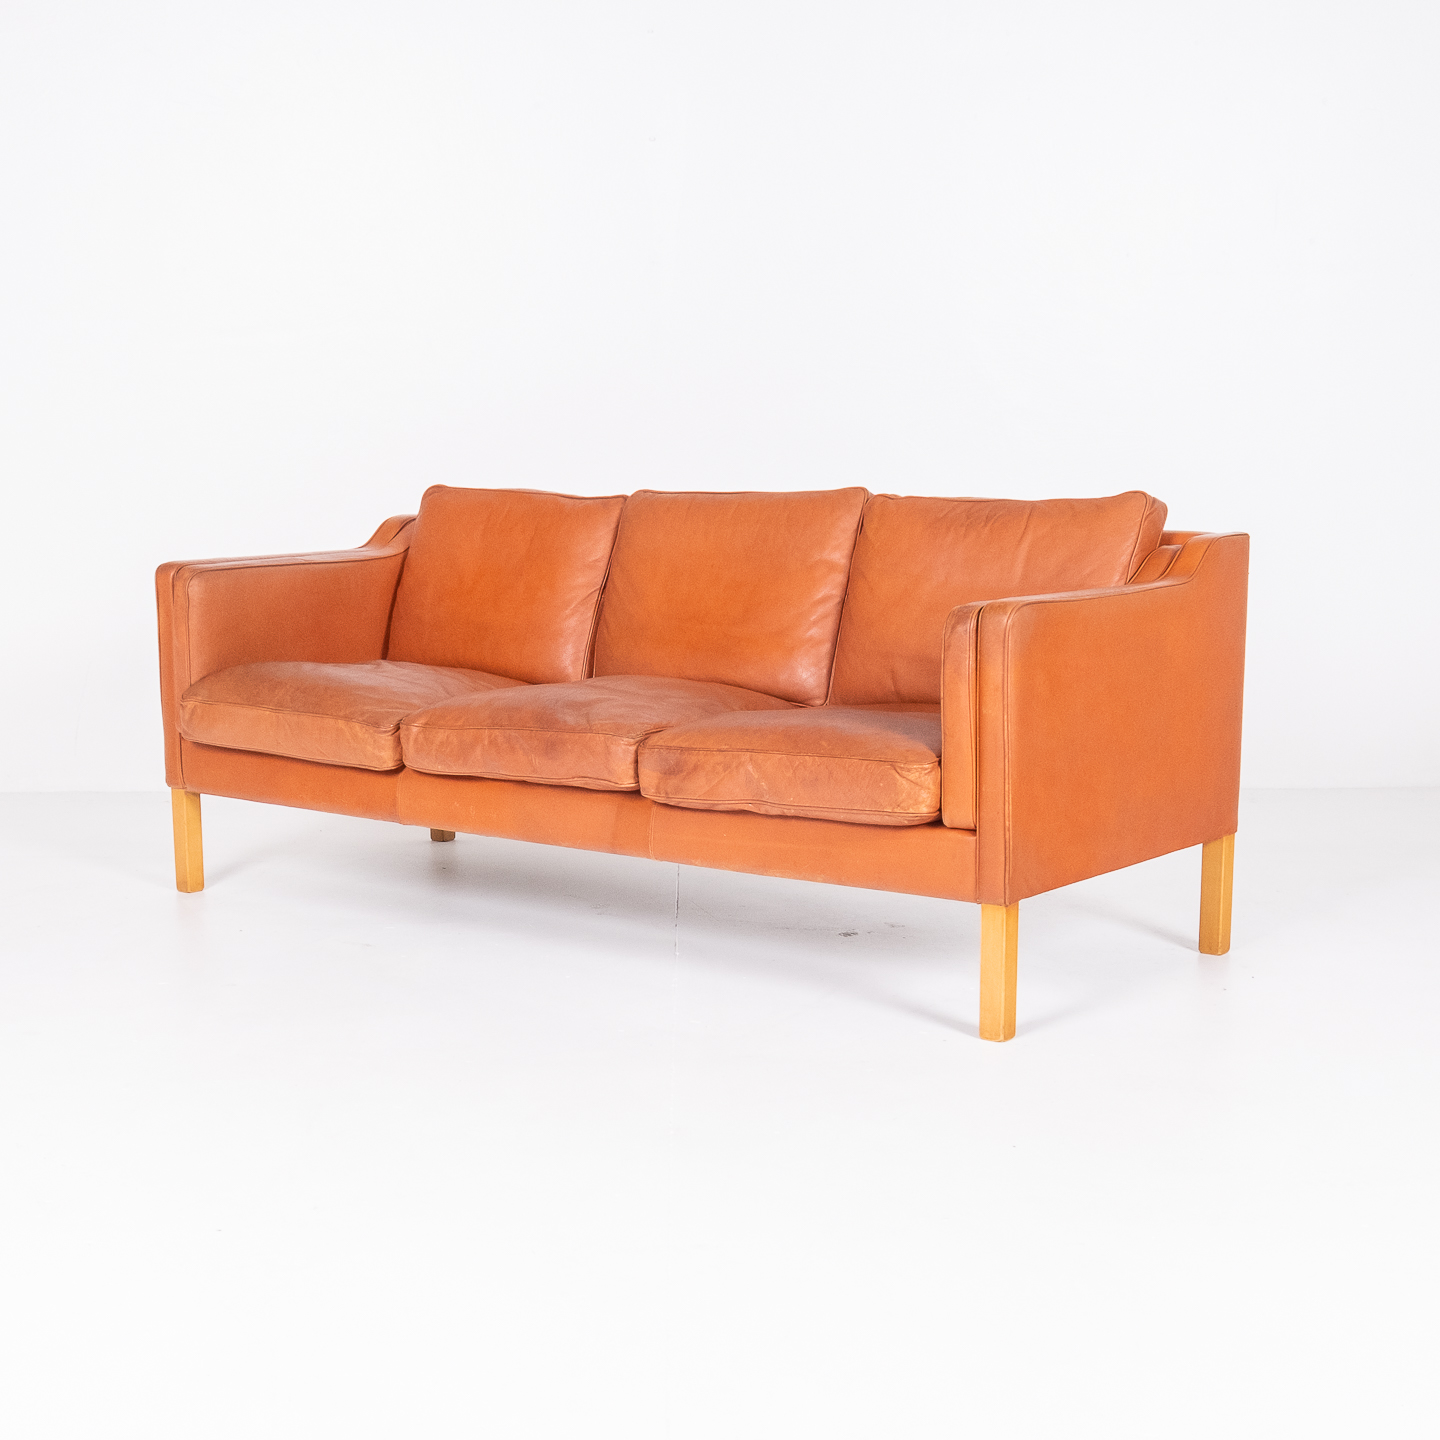 3 Seat Sofa In Tan Leather By Thams, 1960s, Denmark00002